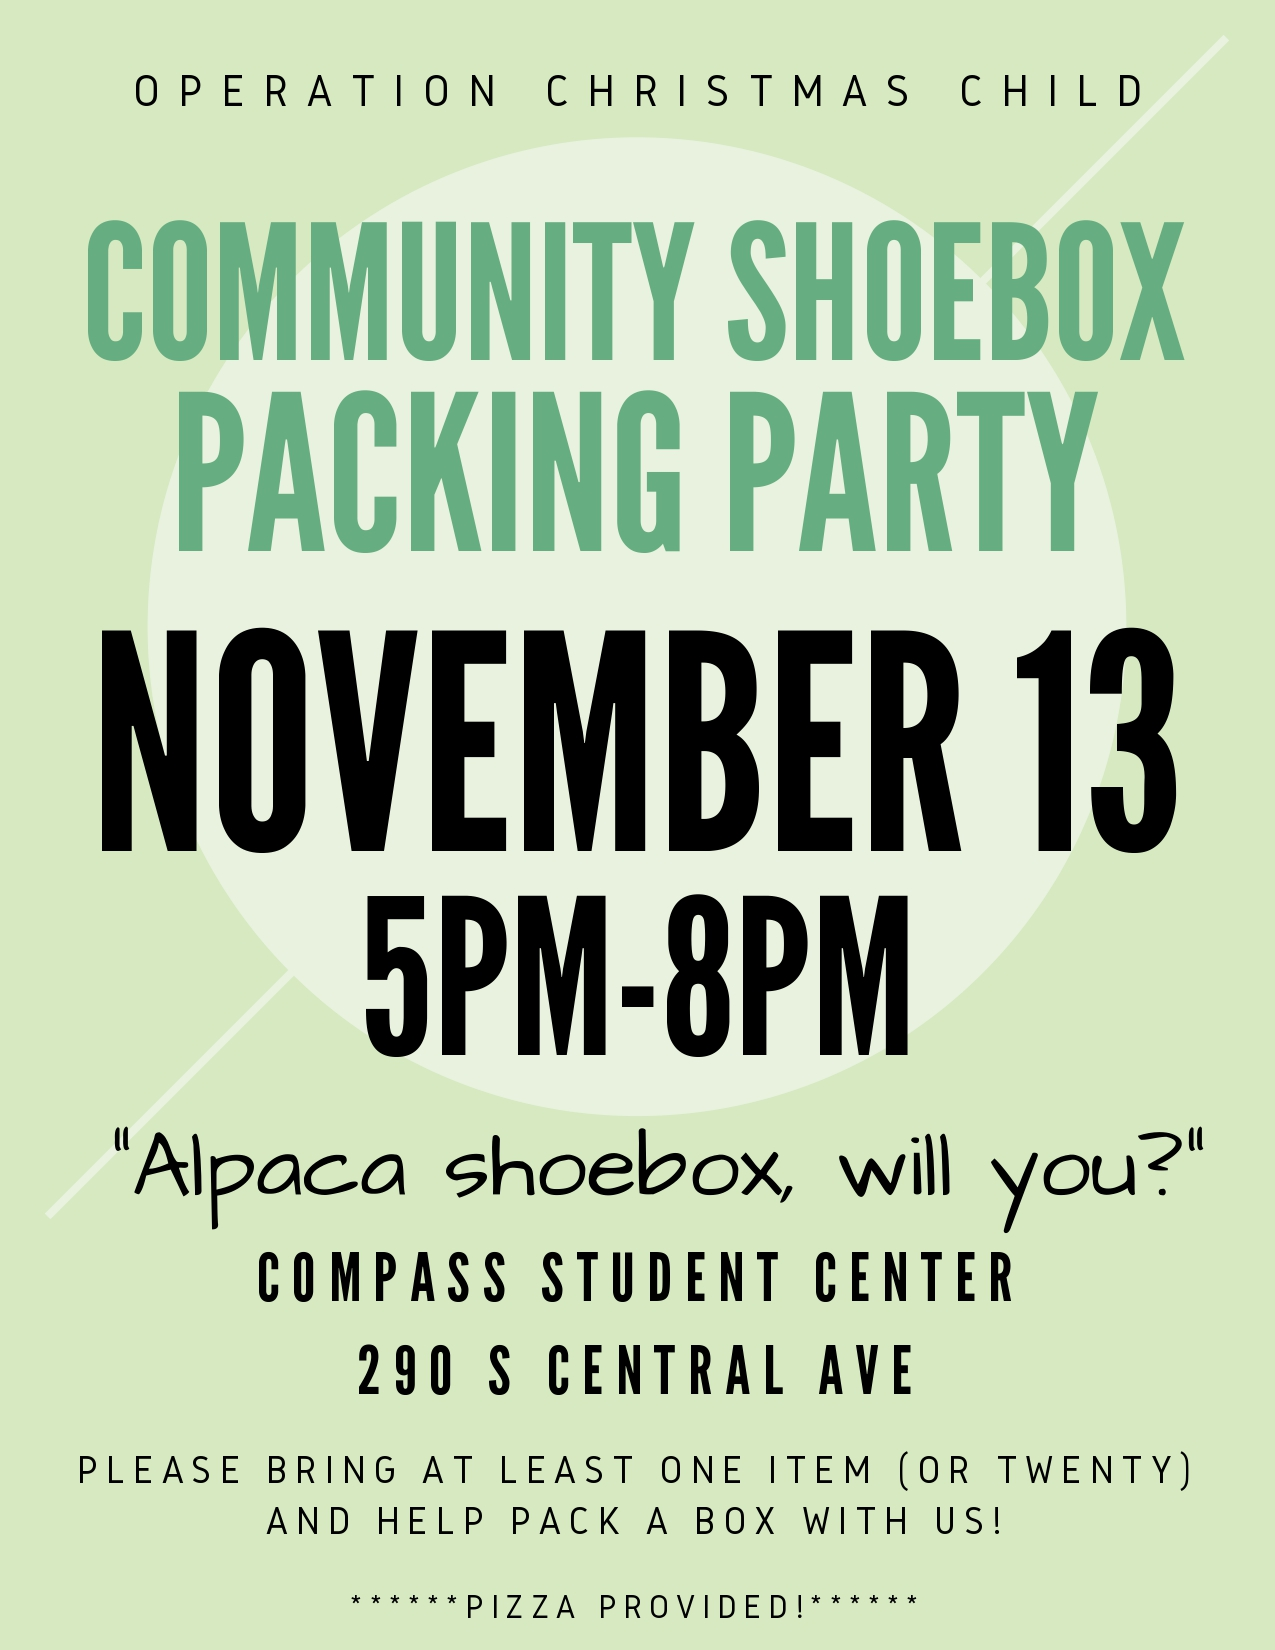 Community Shoebox Packing Party